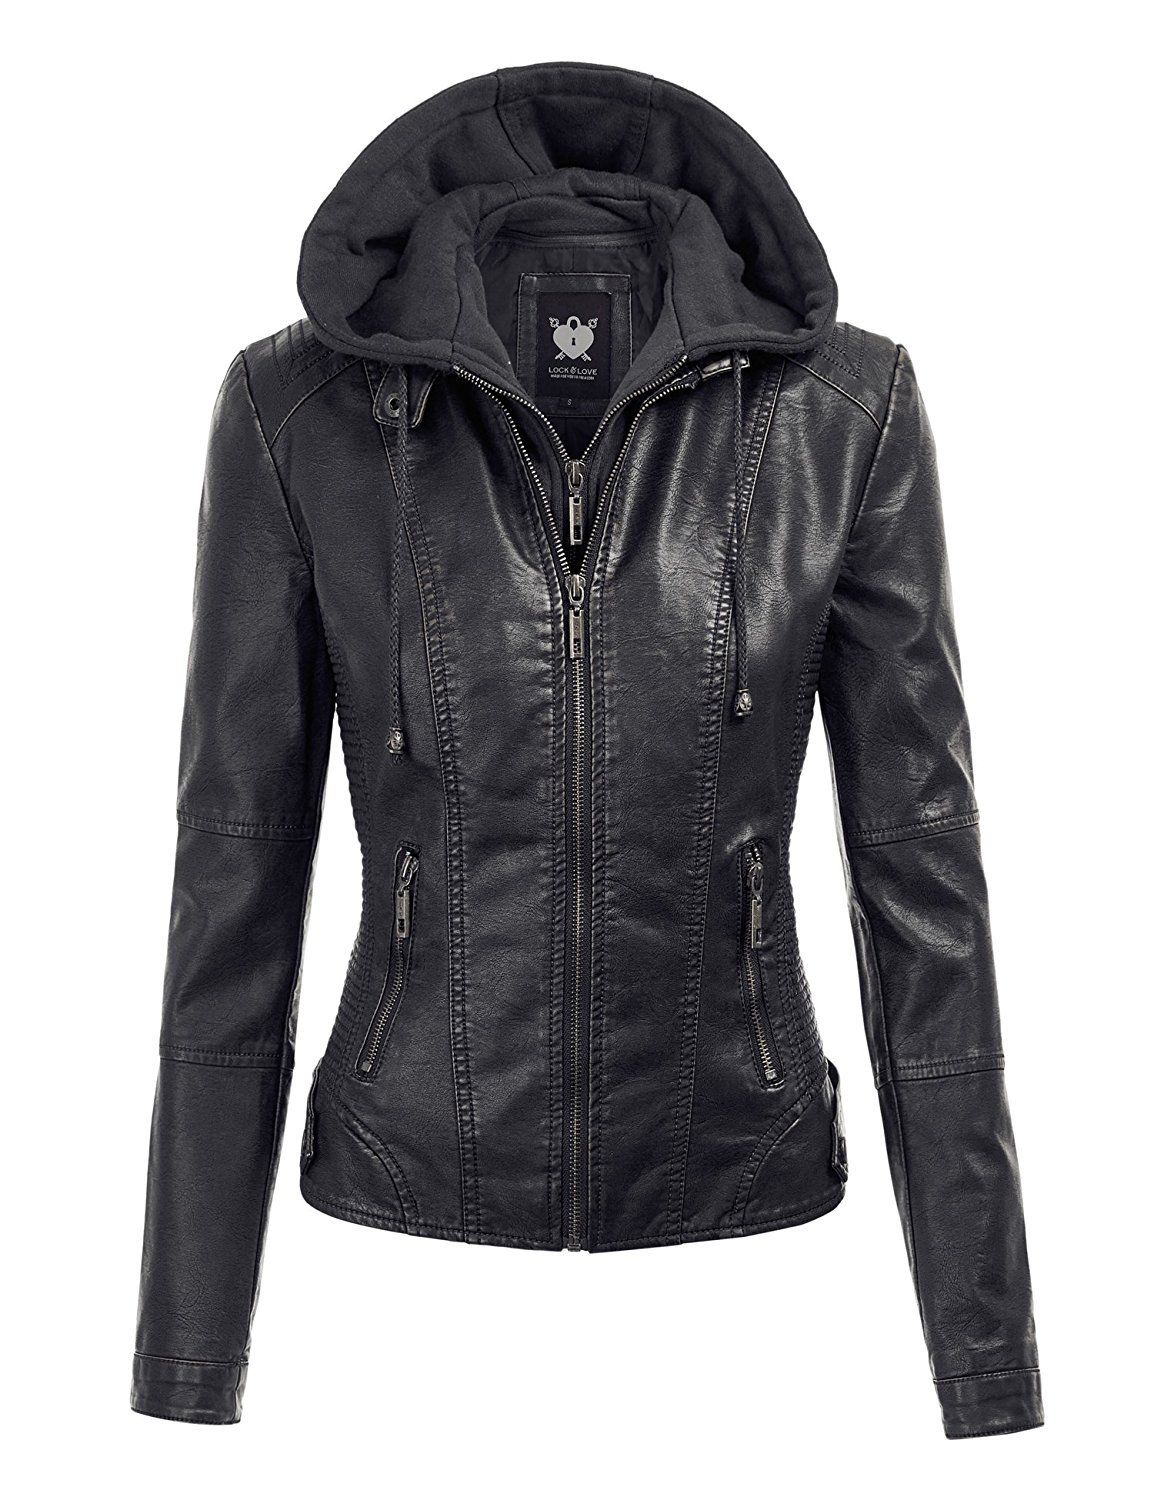 Womens Hooded Faux leather Jacket Leather jackets women